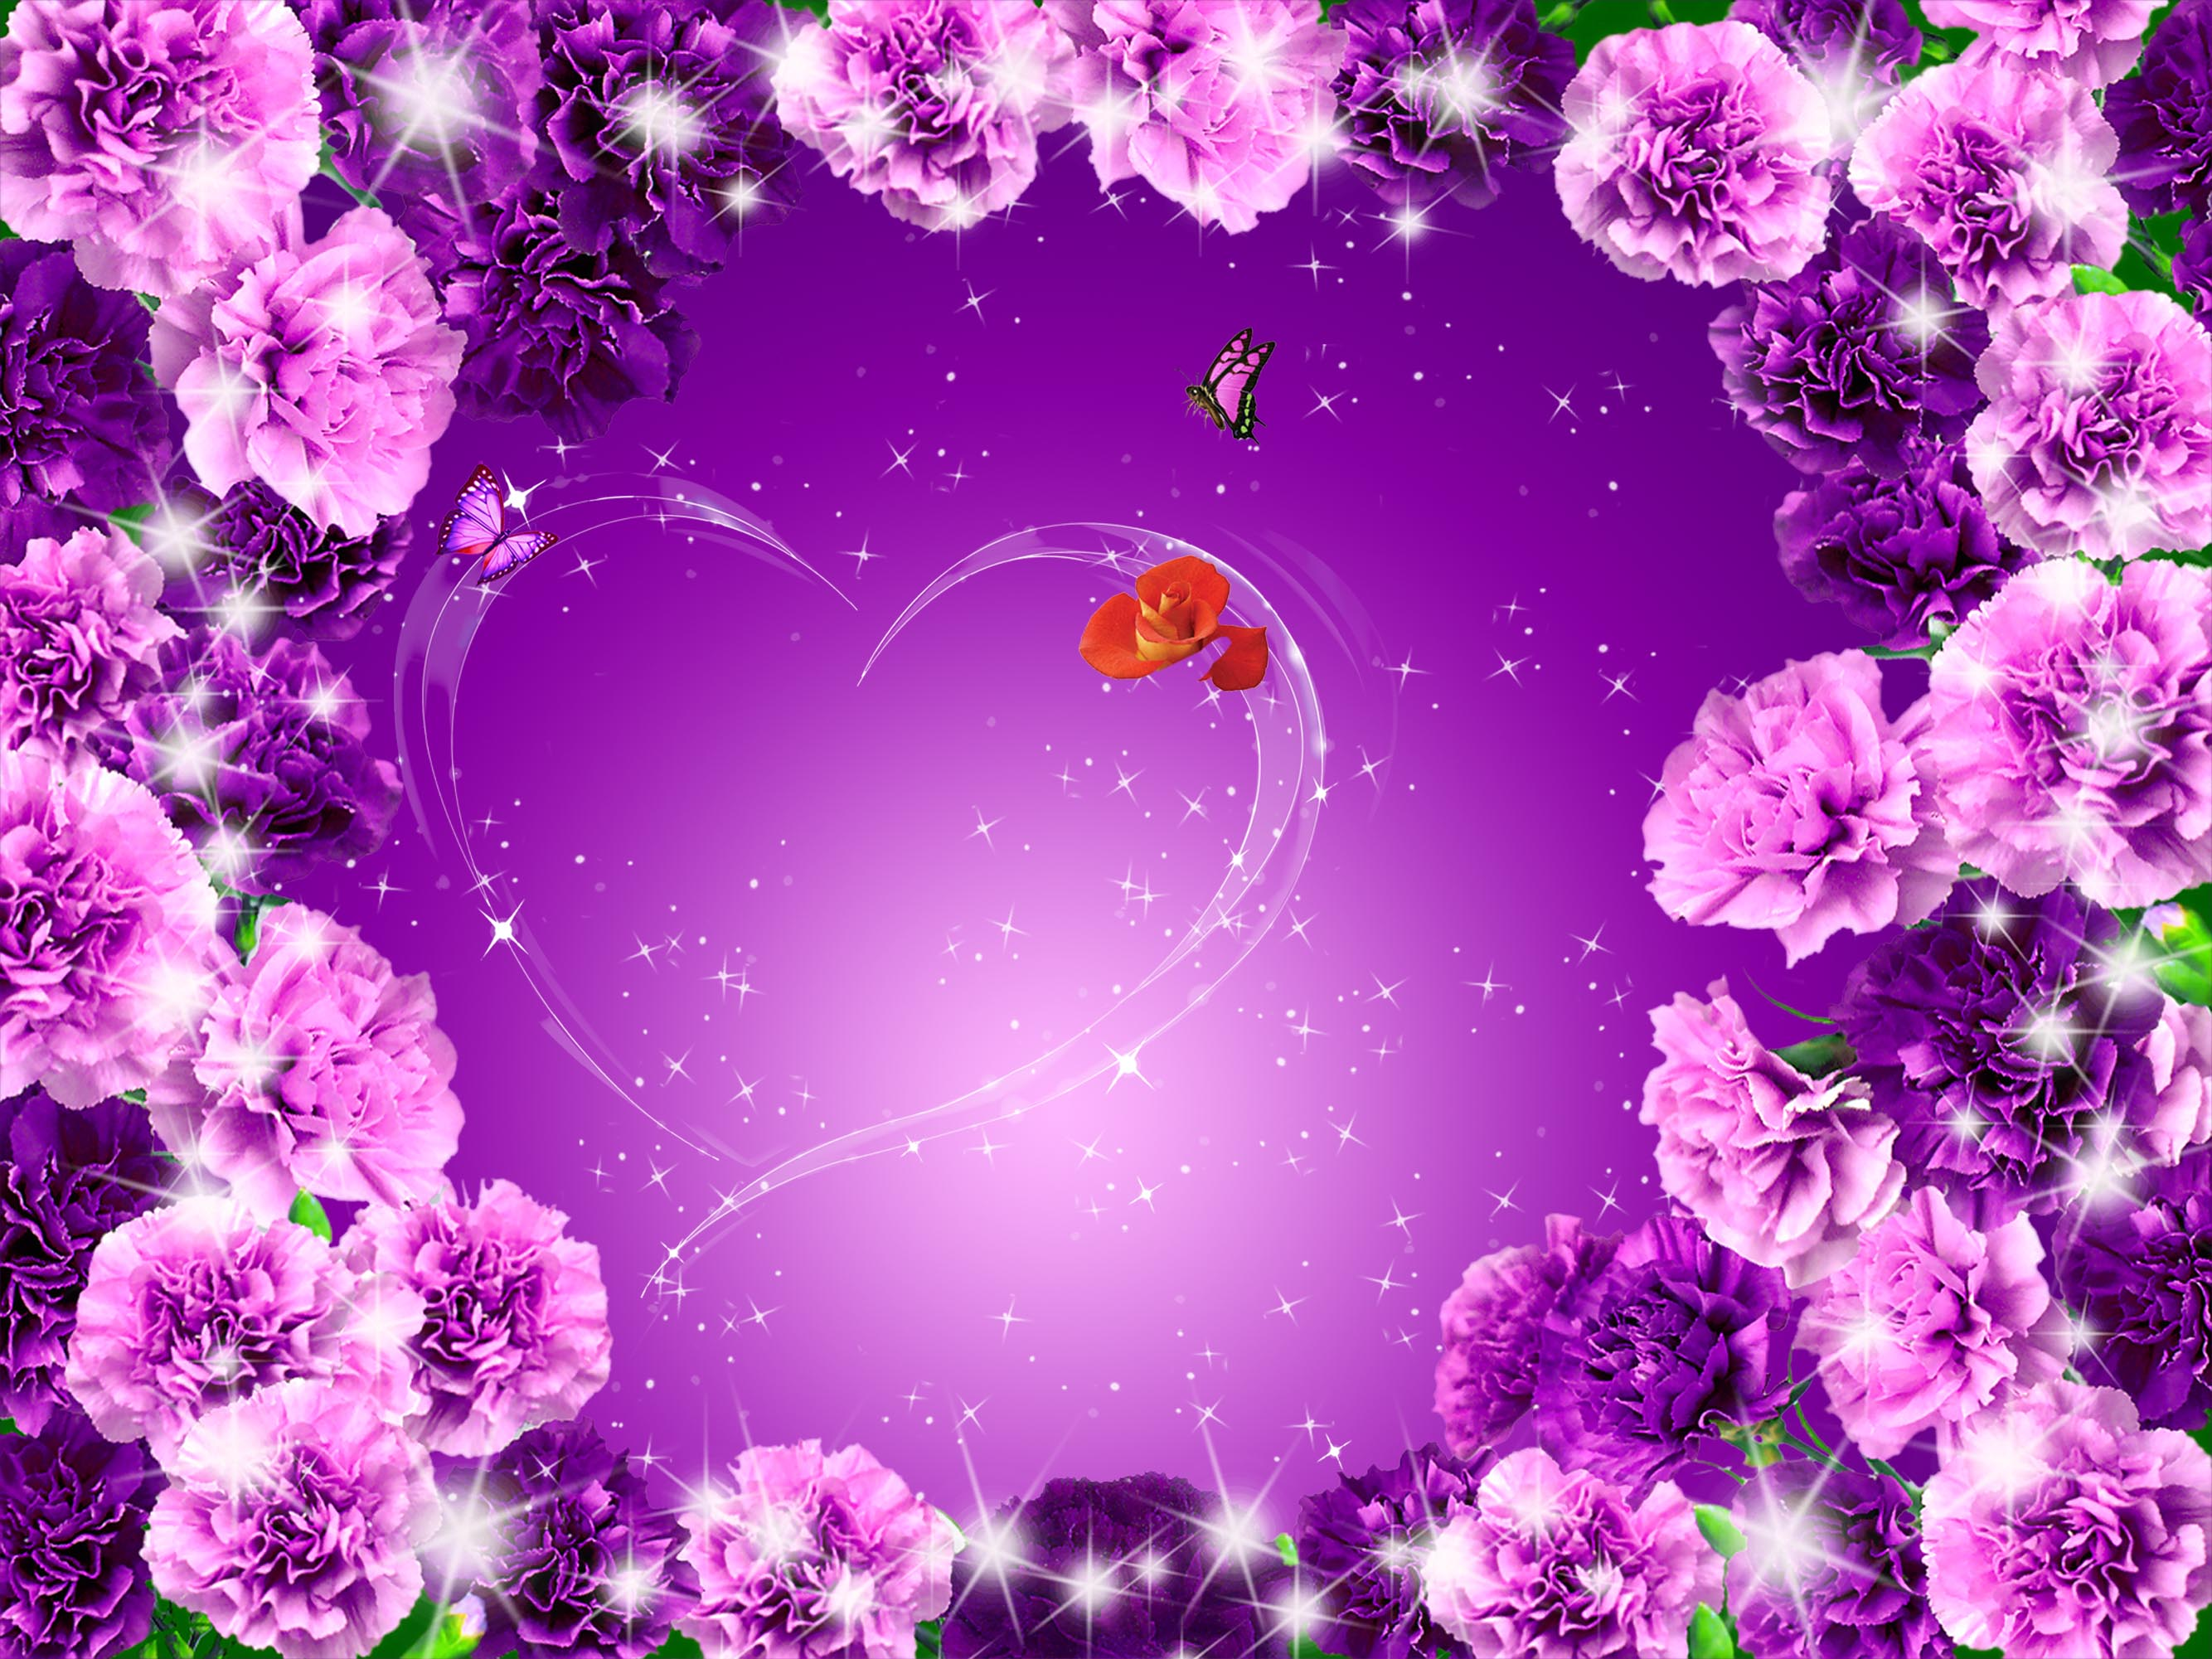 Purple Roses Background Images: Posters Purple Flowers Background Material, Mothers Day